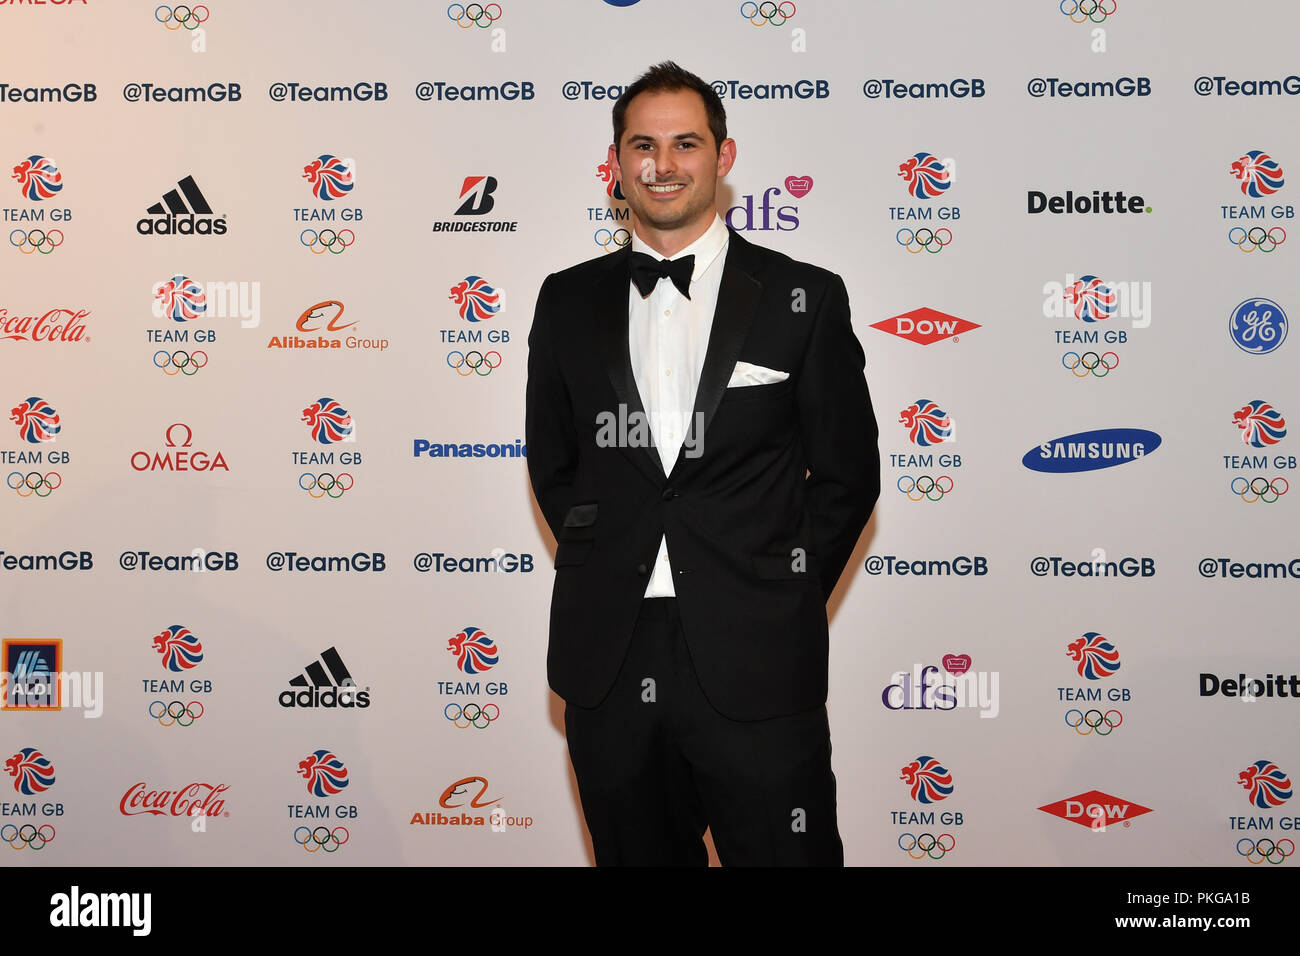 London, UK. 13th September 2018. Dom Parsons arrived at the Team GB Ball 2018 - Red Carpet Arrivals on Thursday, September 13, 2018, LONDON ENGLAND. Credit: Taka Wu/Alamy Live News - Stock Image